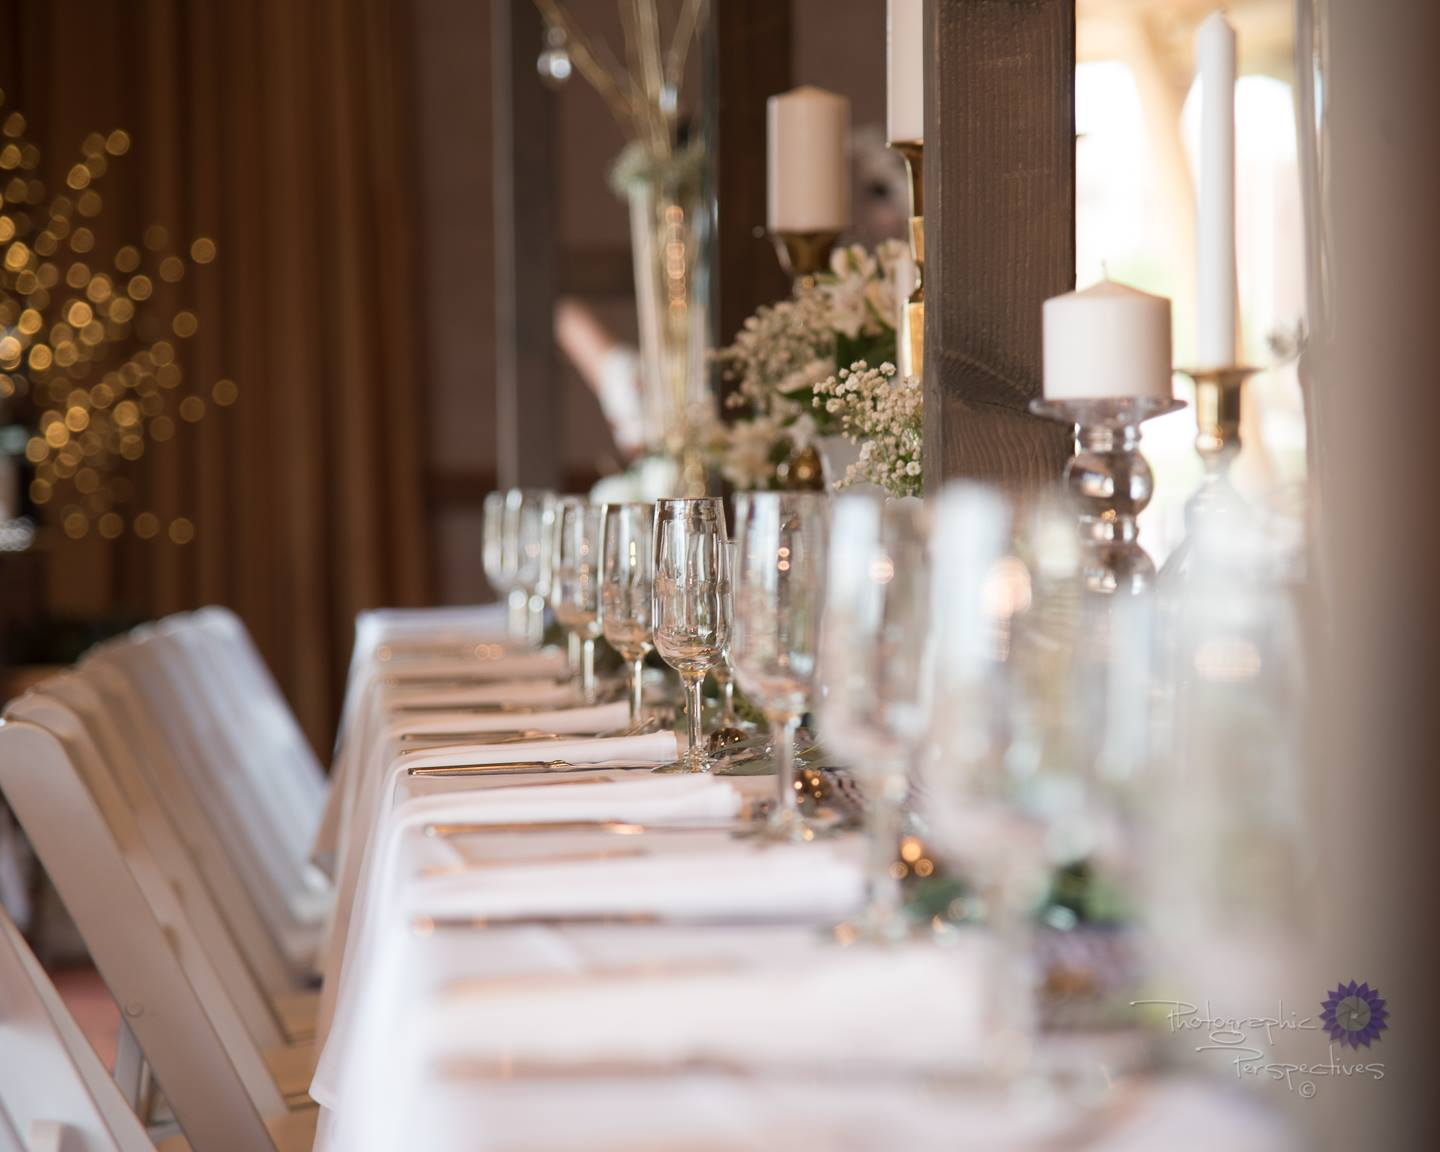 Perfect Wedding Guide planning design inspo ceremony inspiration marriage wedding vows celebration engaged planner tips tricks tablescape decor event New Mexico Albuquerque Santa Fe table decor event planner greek chic greenery white delicate classic elegant